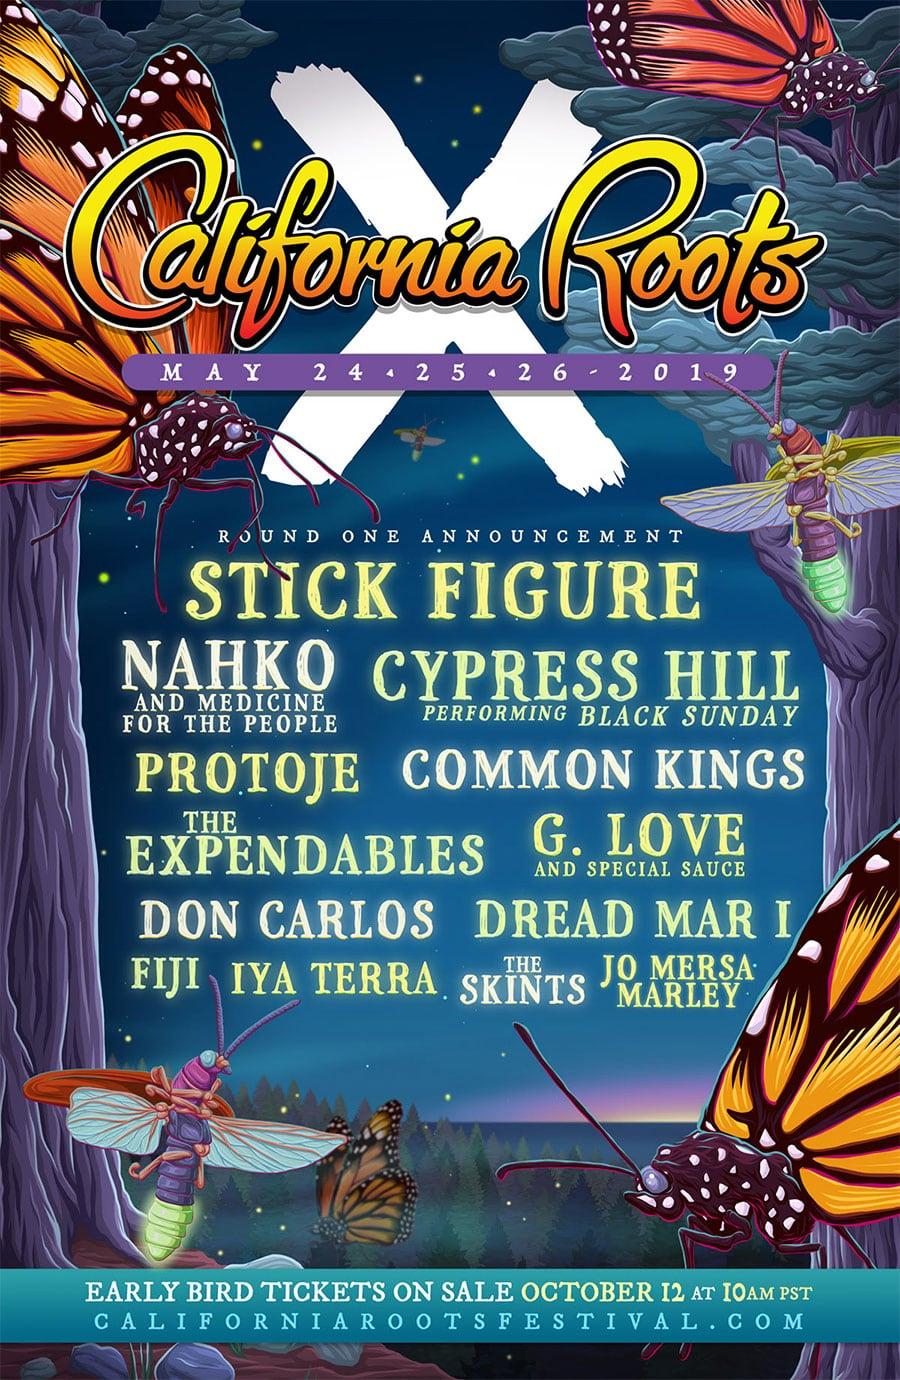 California Roots Music & Arts Festival 2019